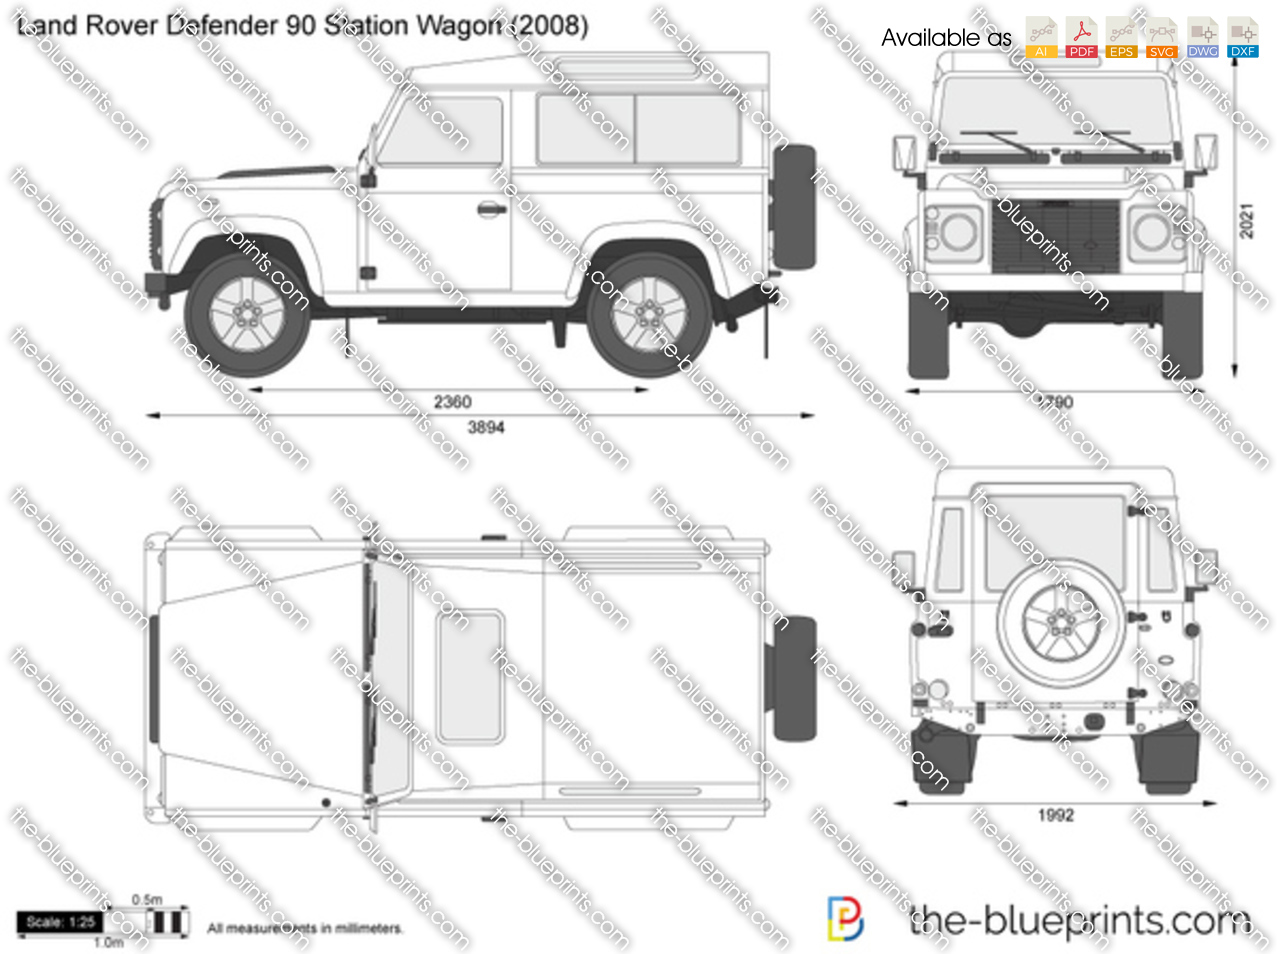 1992 Land Rover Defender 90 Station Wagon